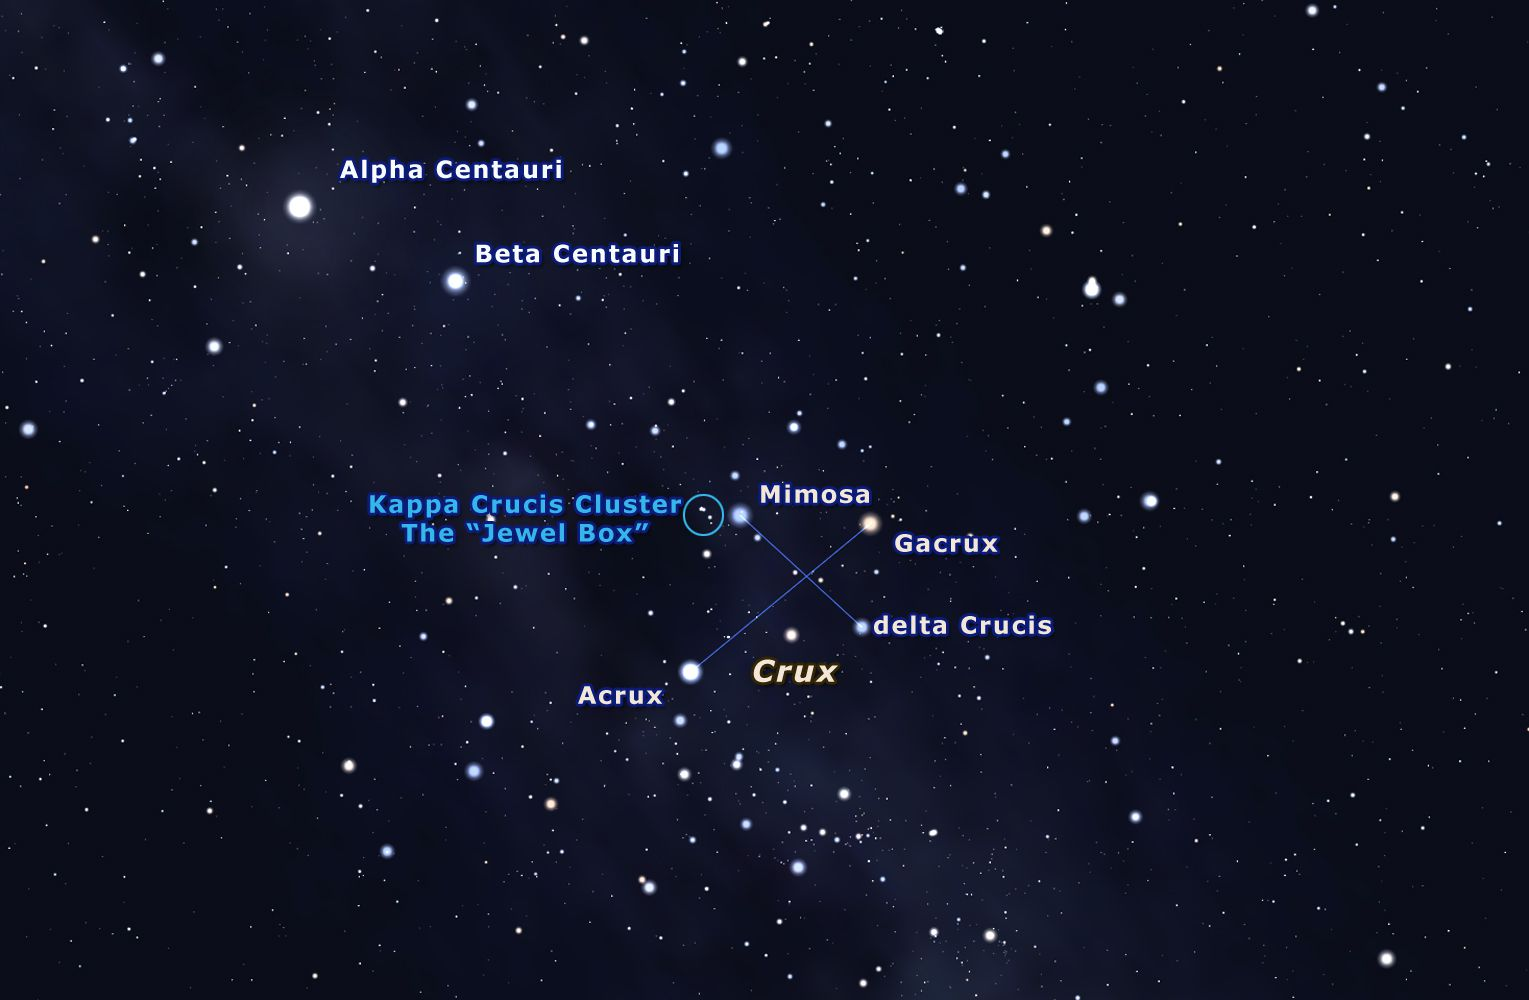 Star chart showing the southern cross